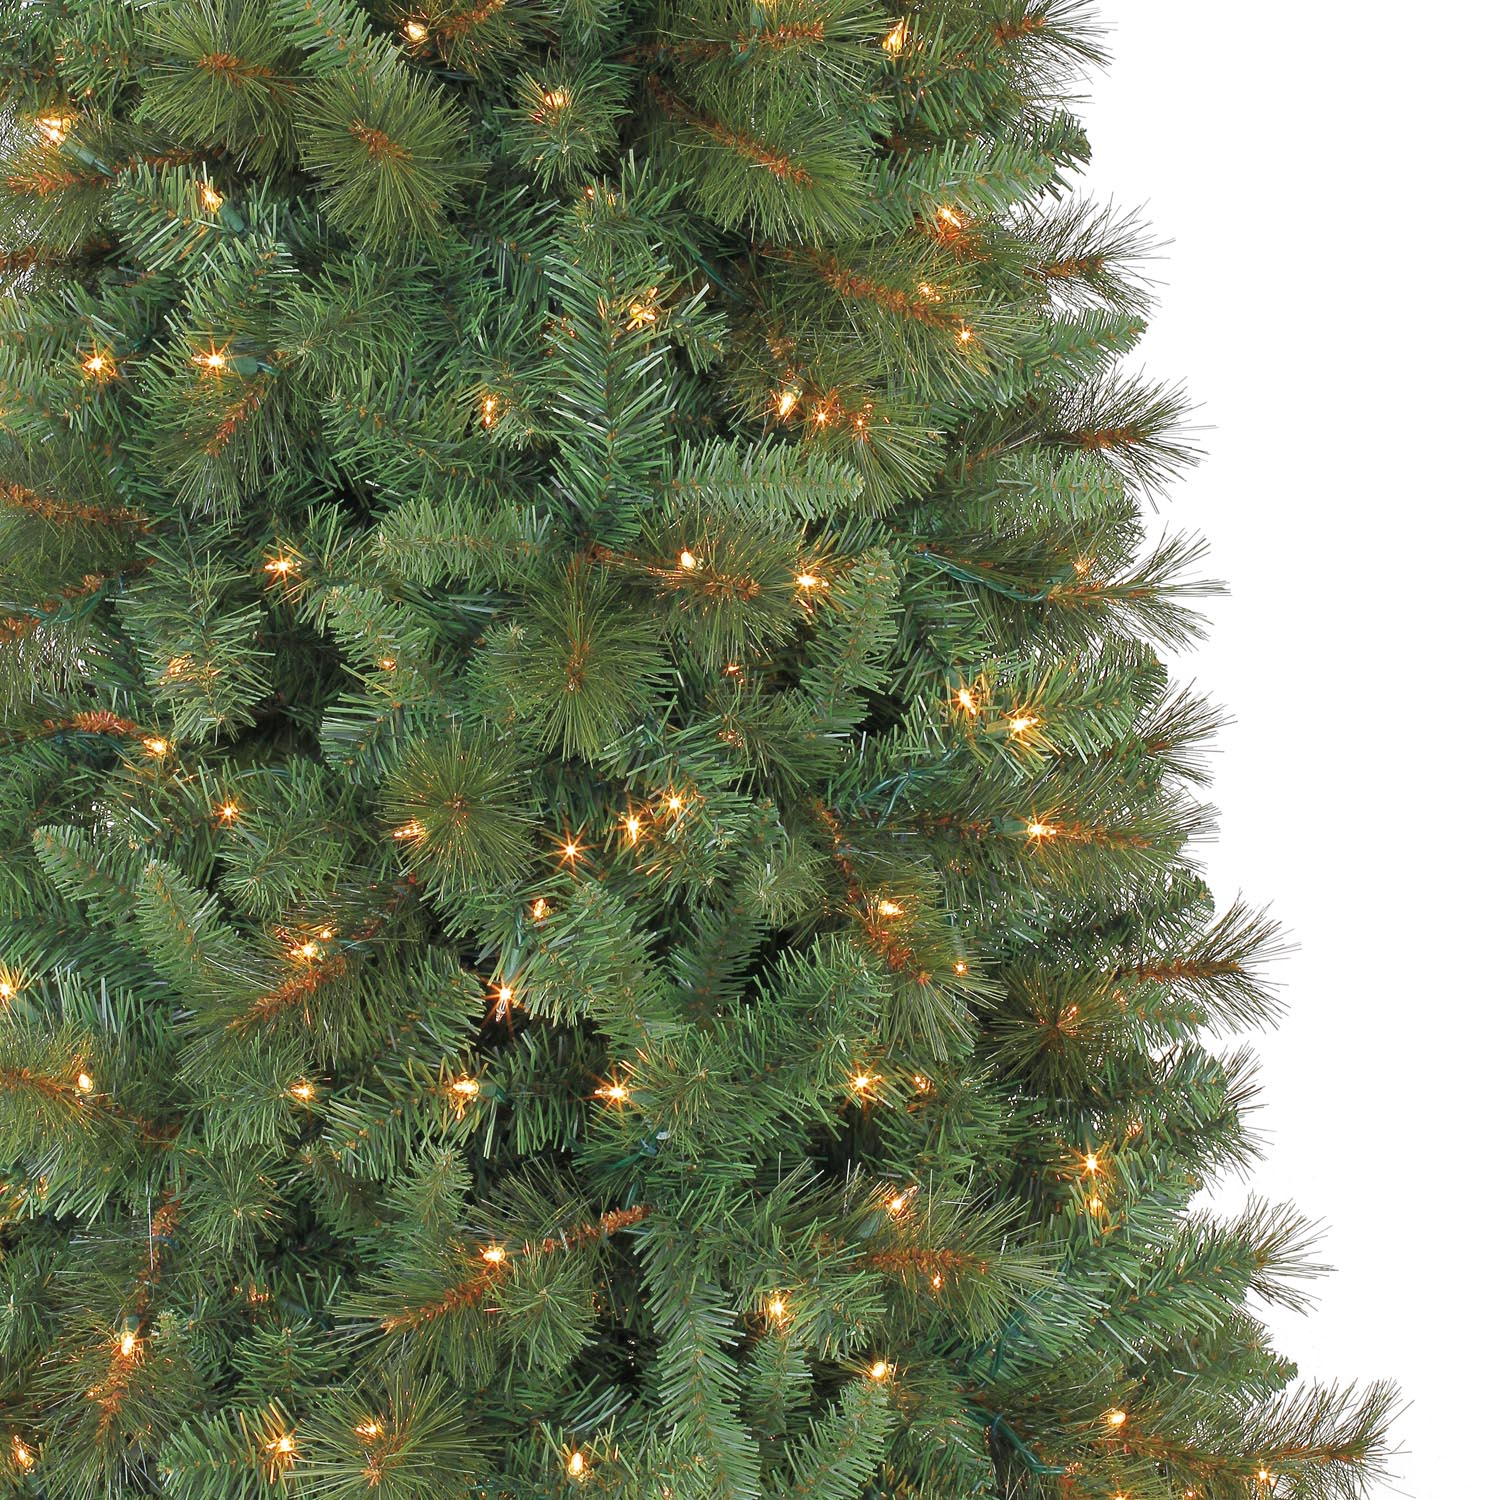 7 Ft. Pre-Lit Green Full Willow Pine Artificial Christmas Tree ...